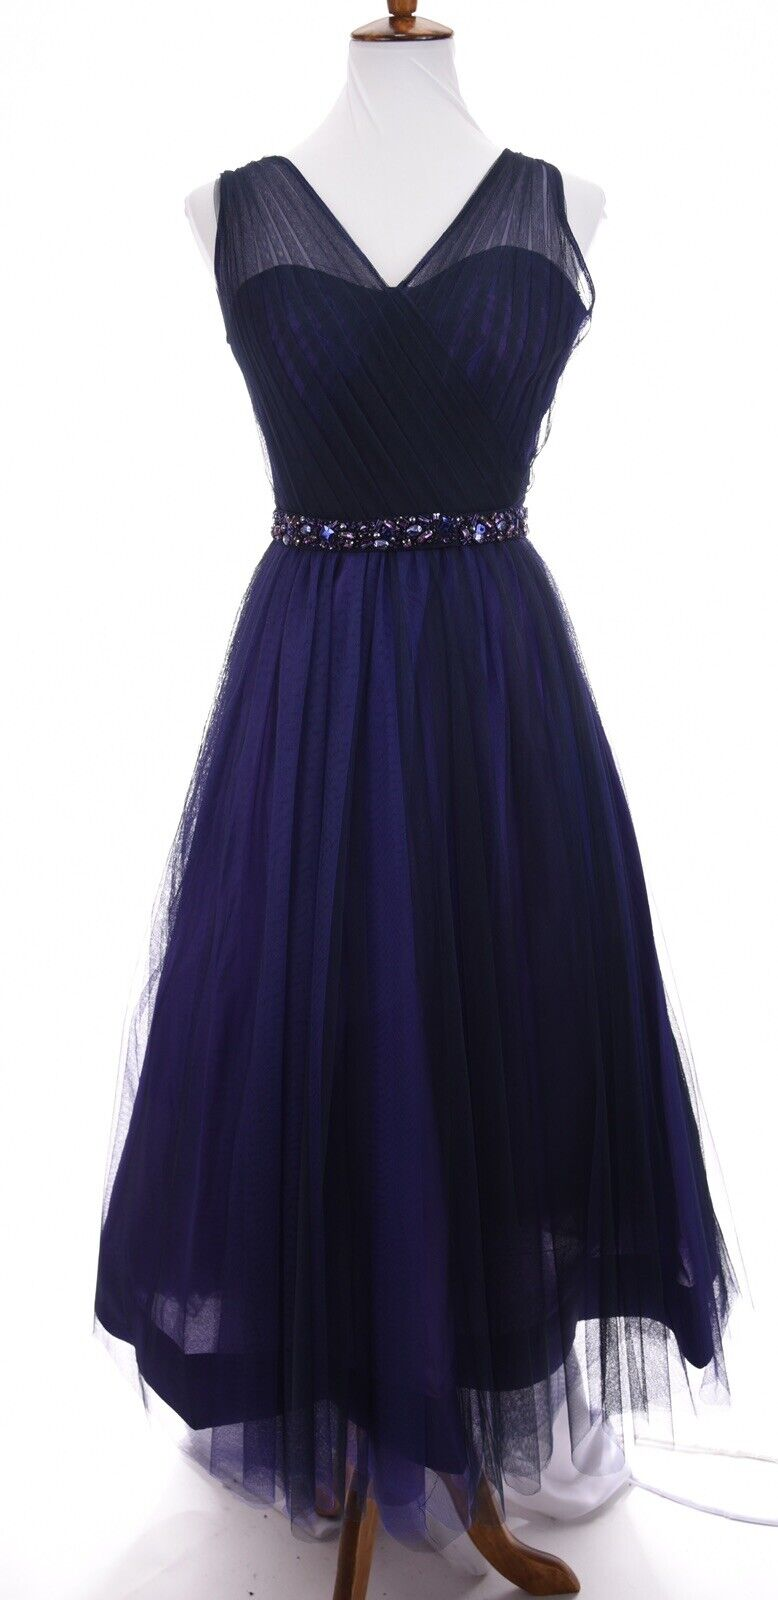 Monique Lhuillier Fit and Flare Long Tulle Ball Gown Belted Dress Purple Sz 2